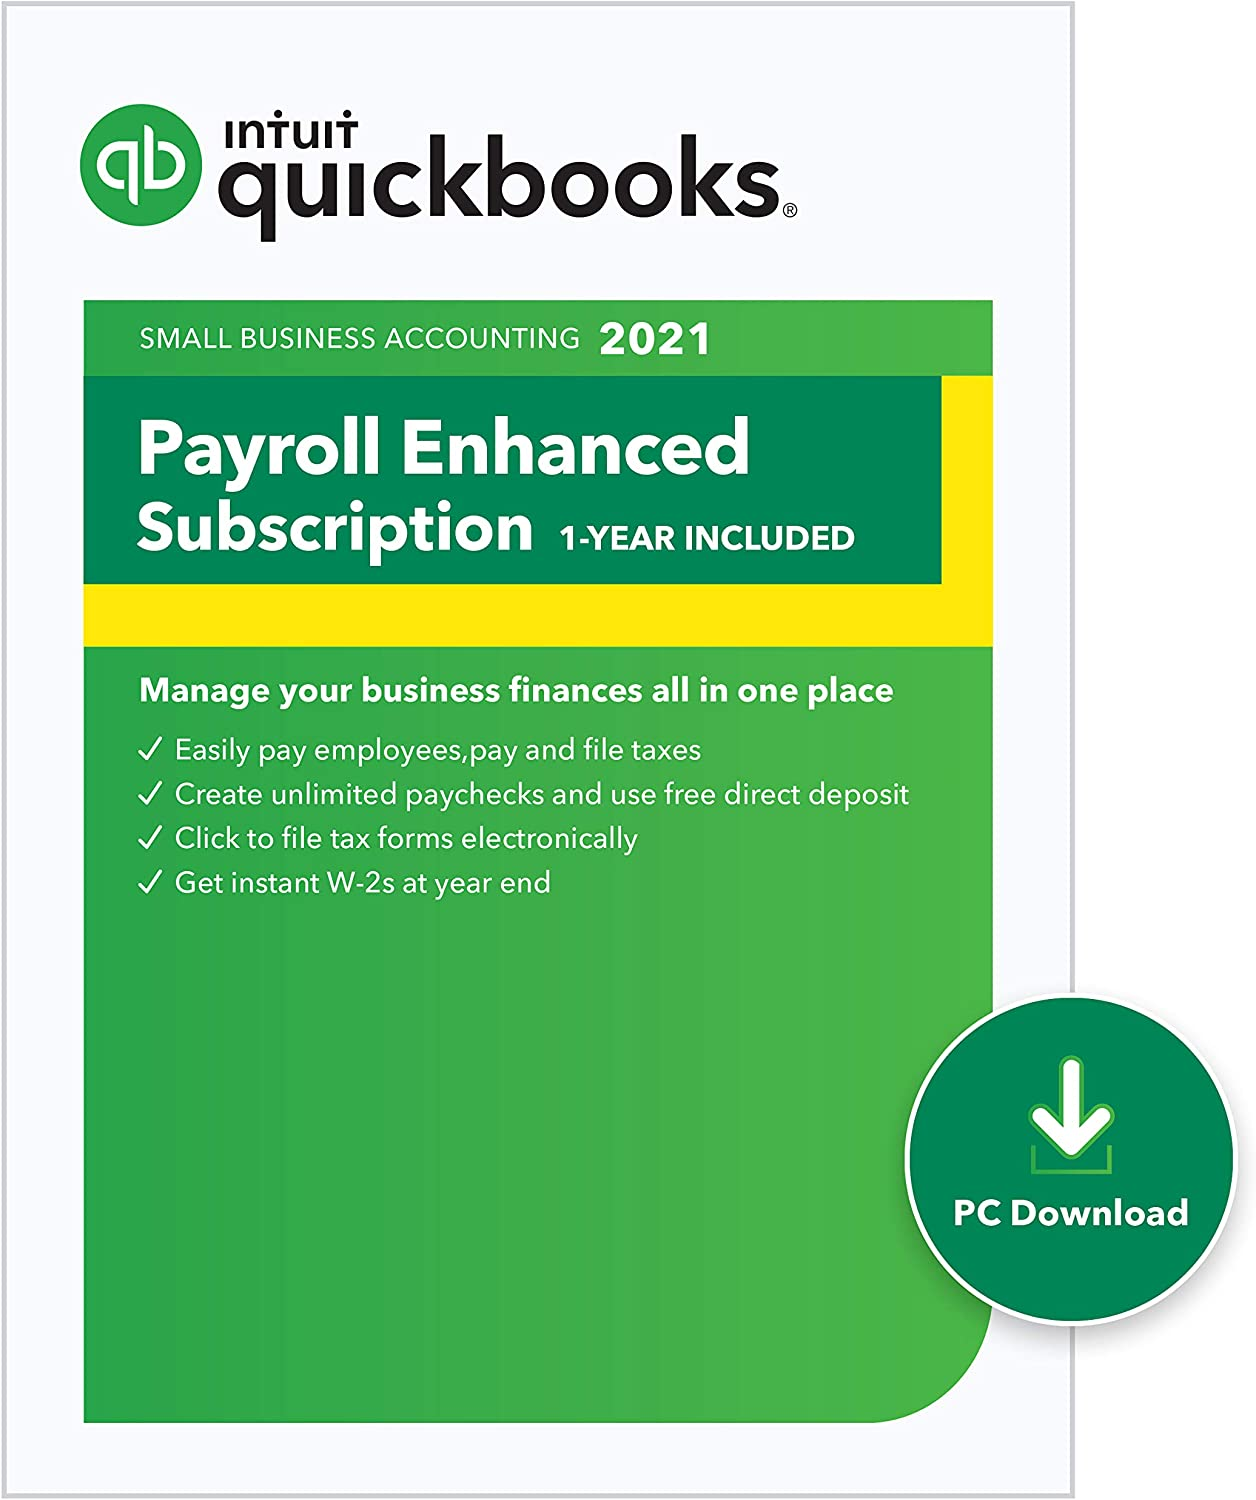 QuickBooks Desktop Enhanced Payroll 2021 Discount Coupon Code